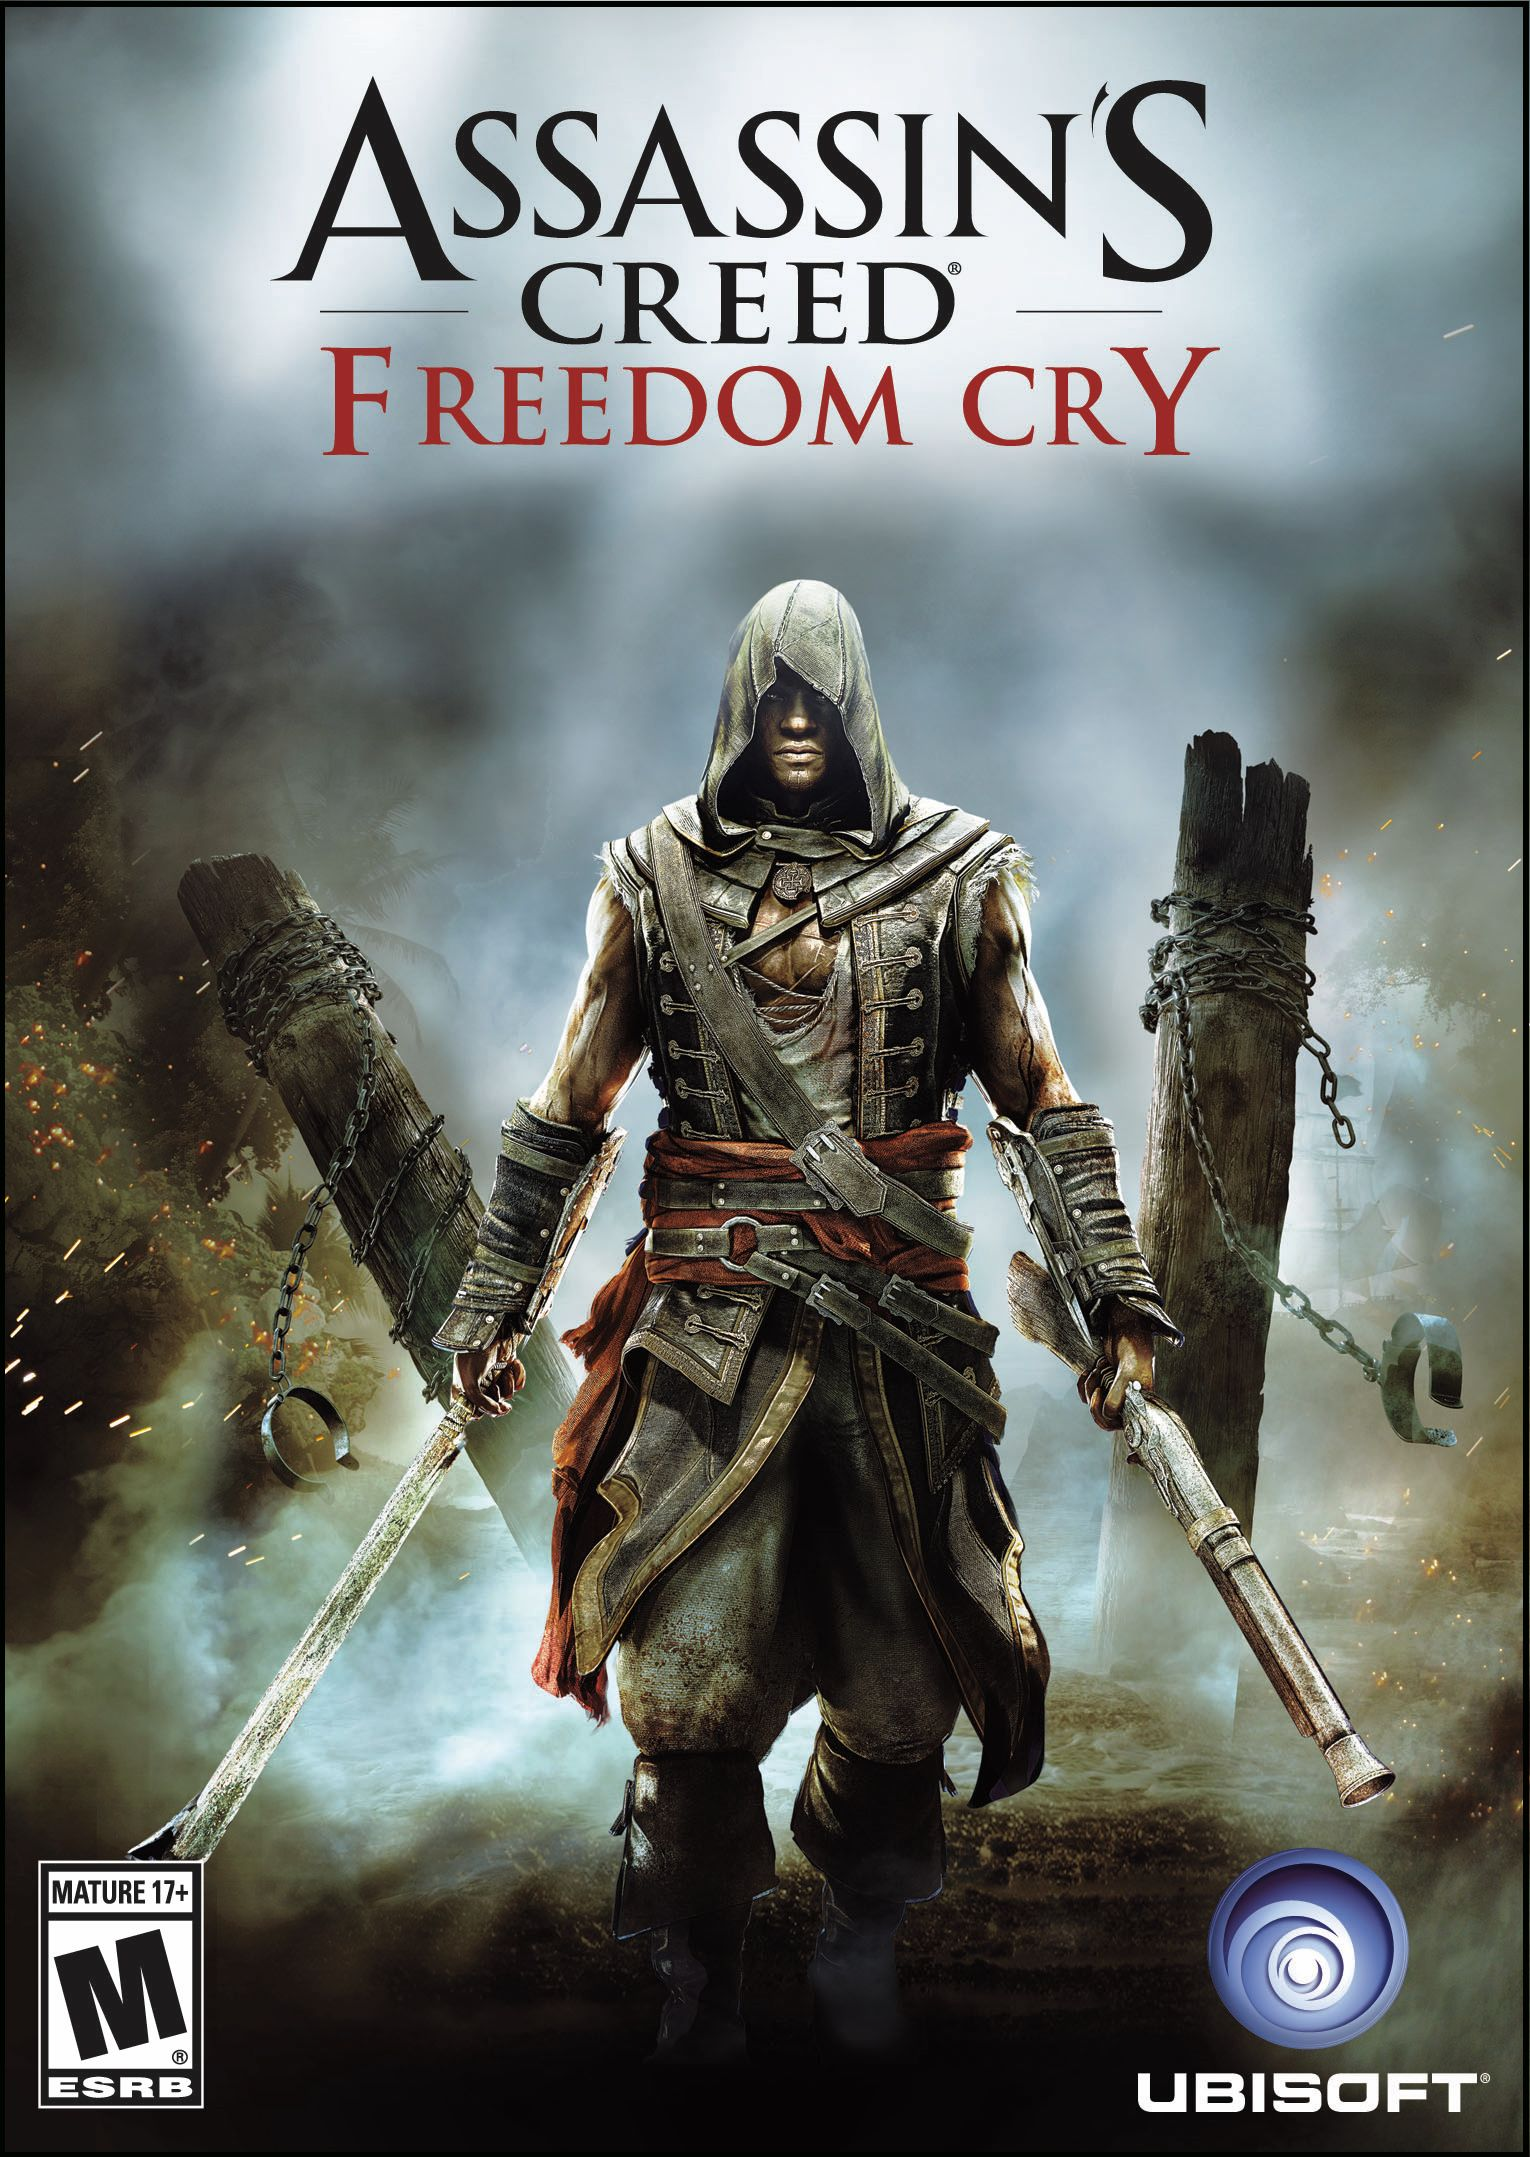 Poster Assassin's Creed: Freedom Cry (2014)